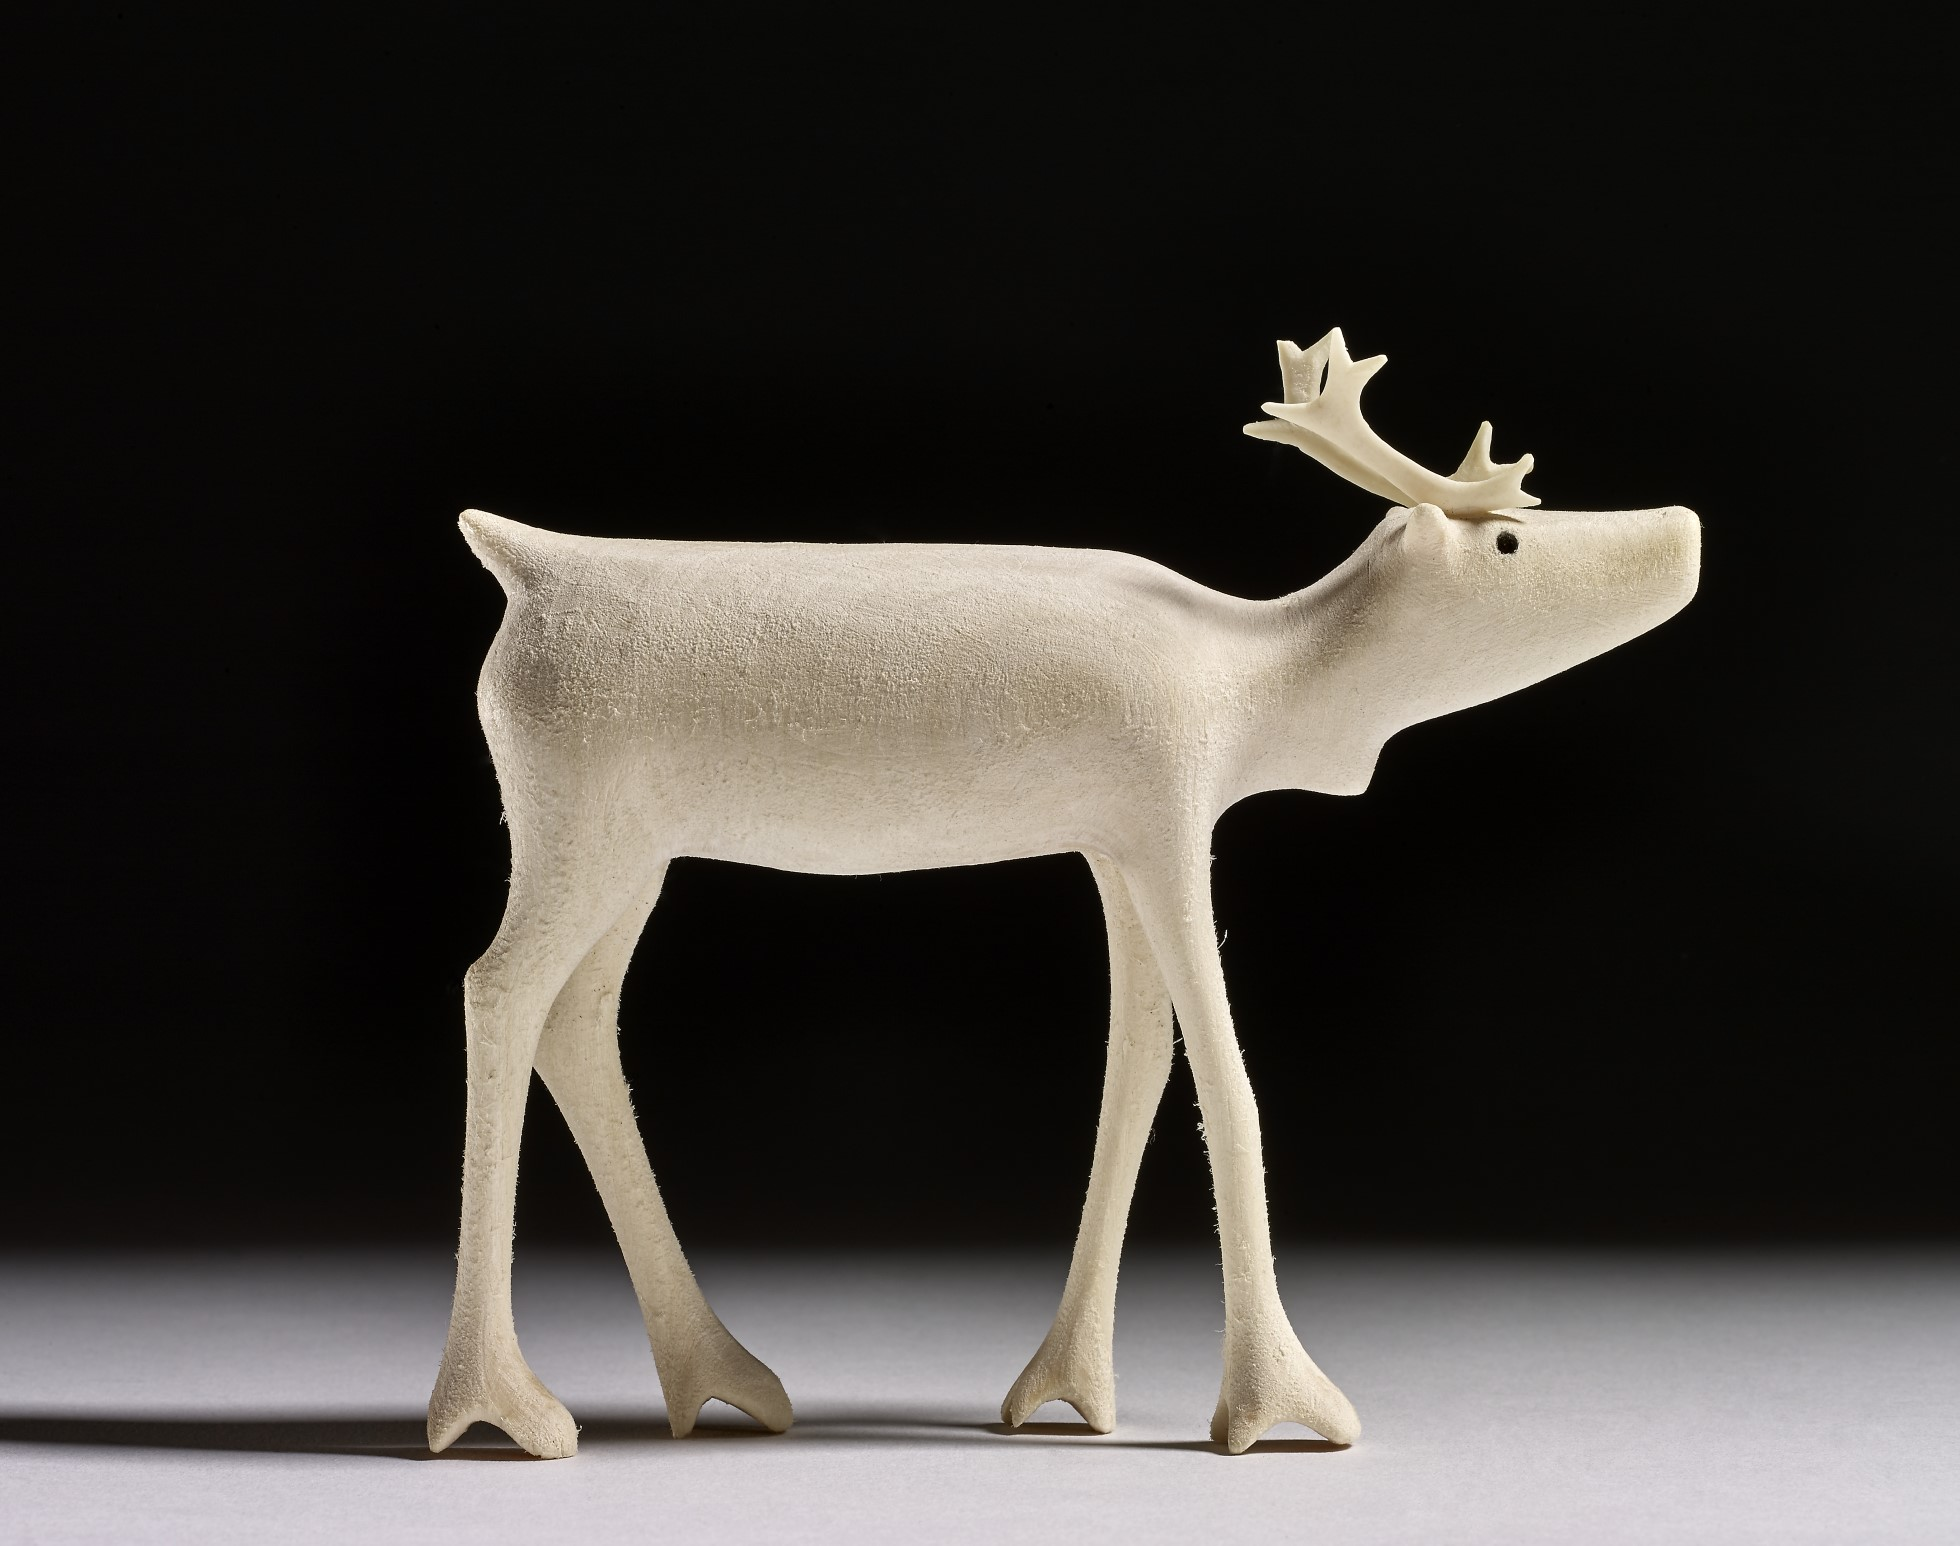 Finely carved and sanded figure of a caribou, cut from wood. The eyes are marked with drilled or punched shallow holes, then blackened. The antlers are made of delicately carved bone.